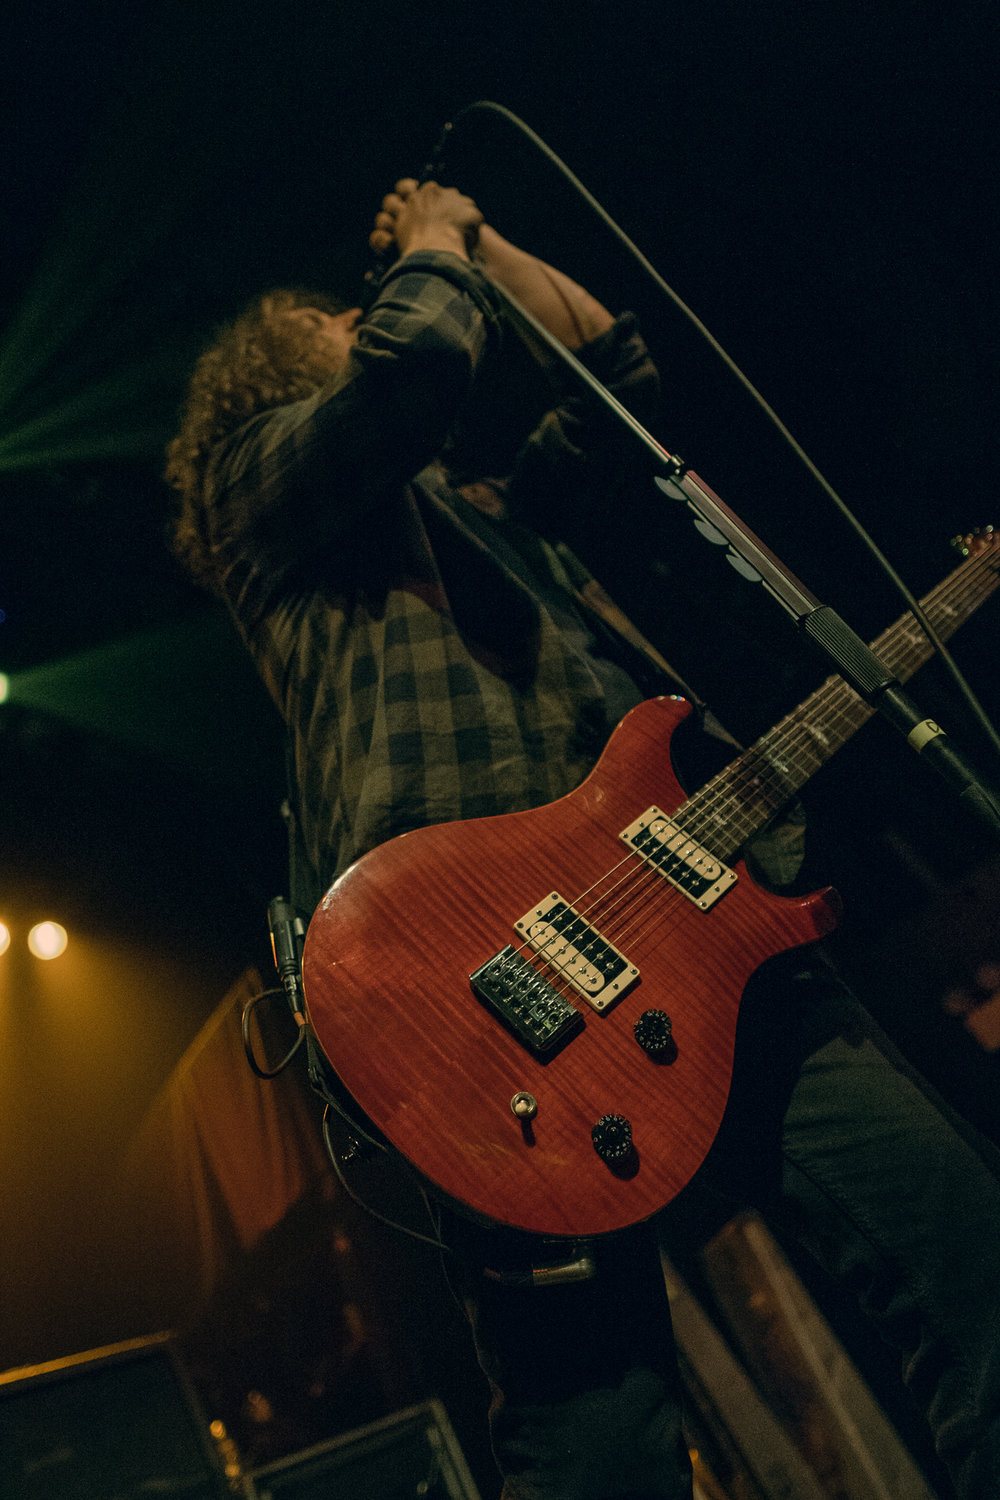 Devour The Day - 11.24.18 - NYC - JP (20 of 31).jpg